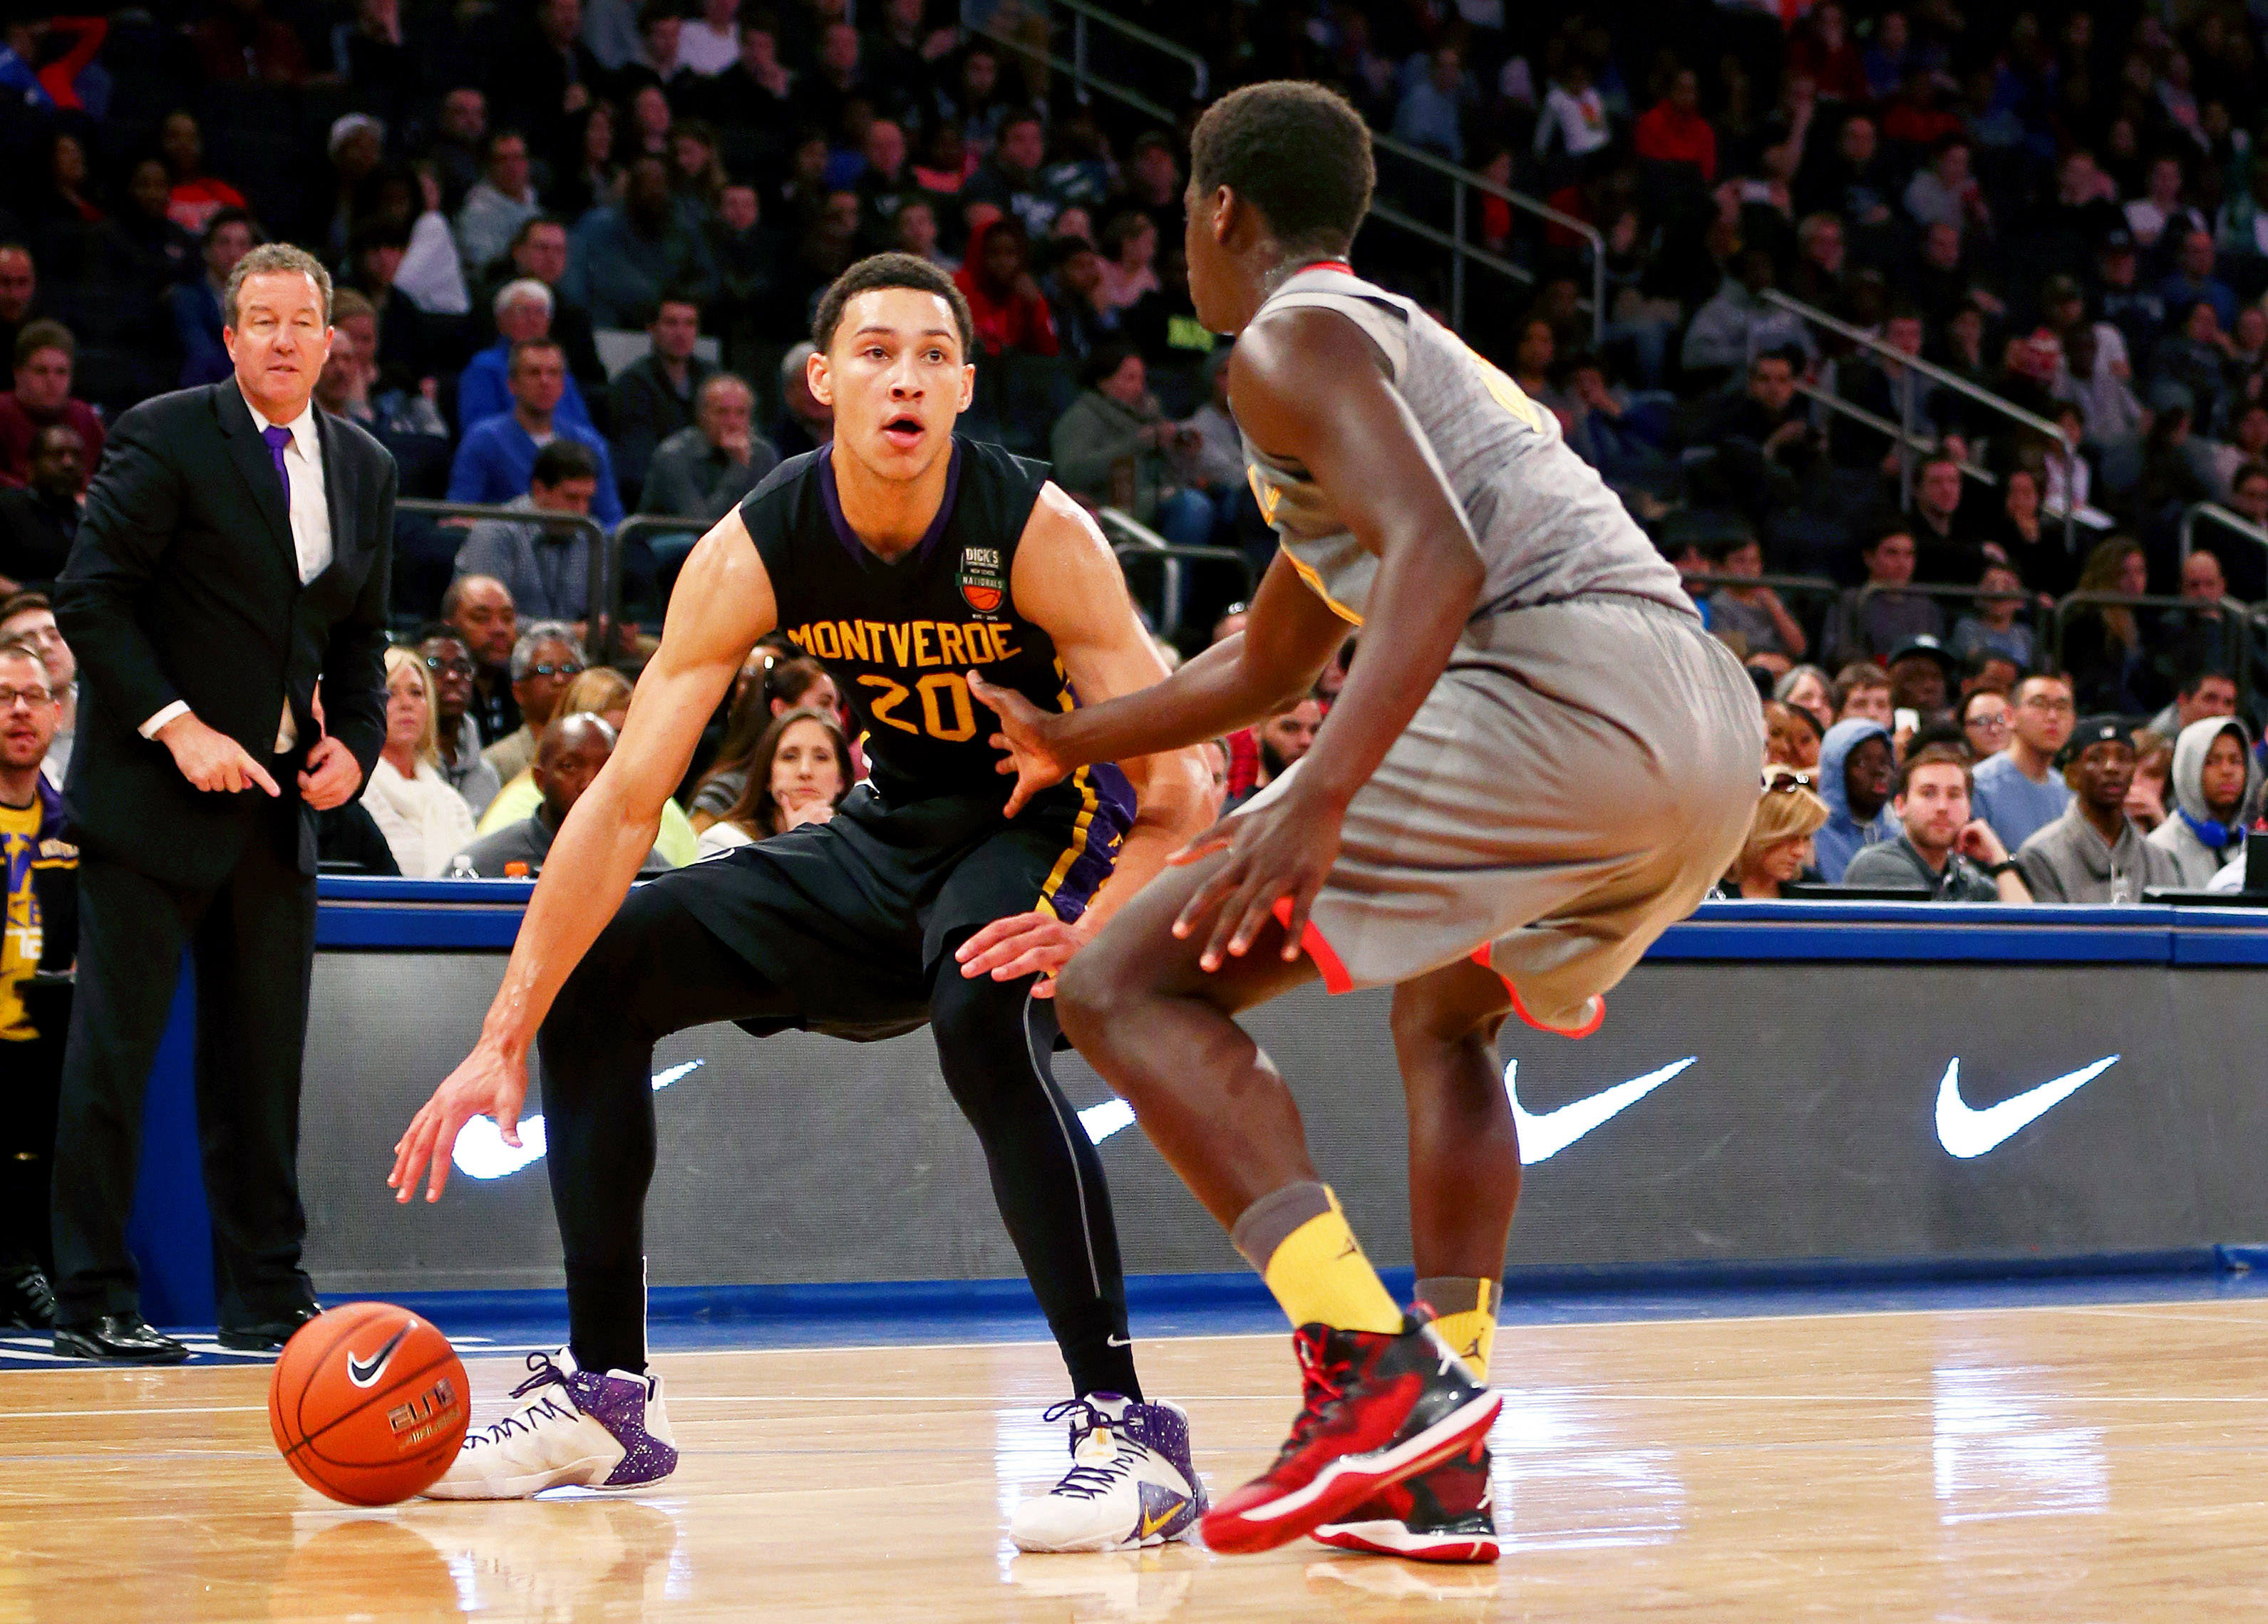 Ben Simmons was named MVP of the DICK'S Nationals although he was hampered by an eye injury. (Photo: Andy Marlin, USA TODAY Sports)